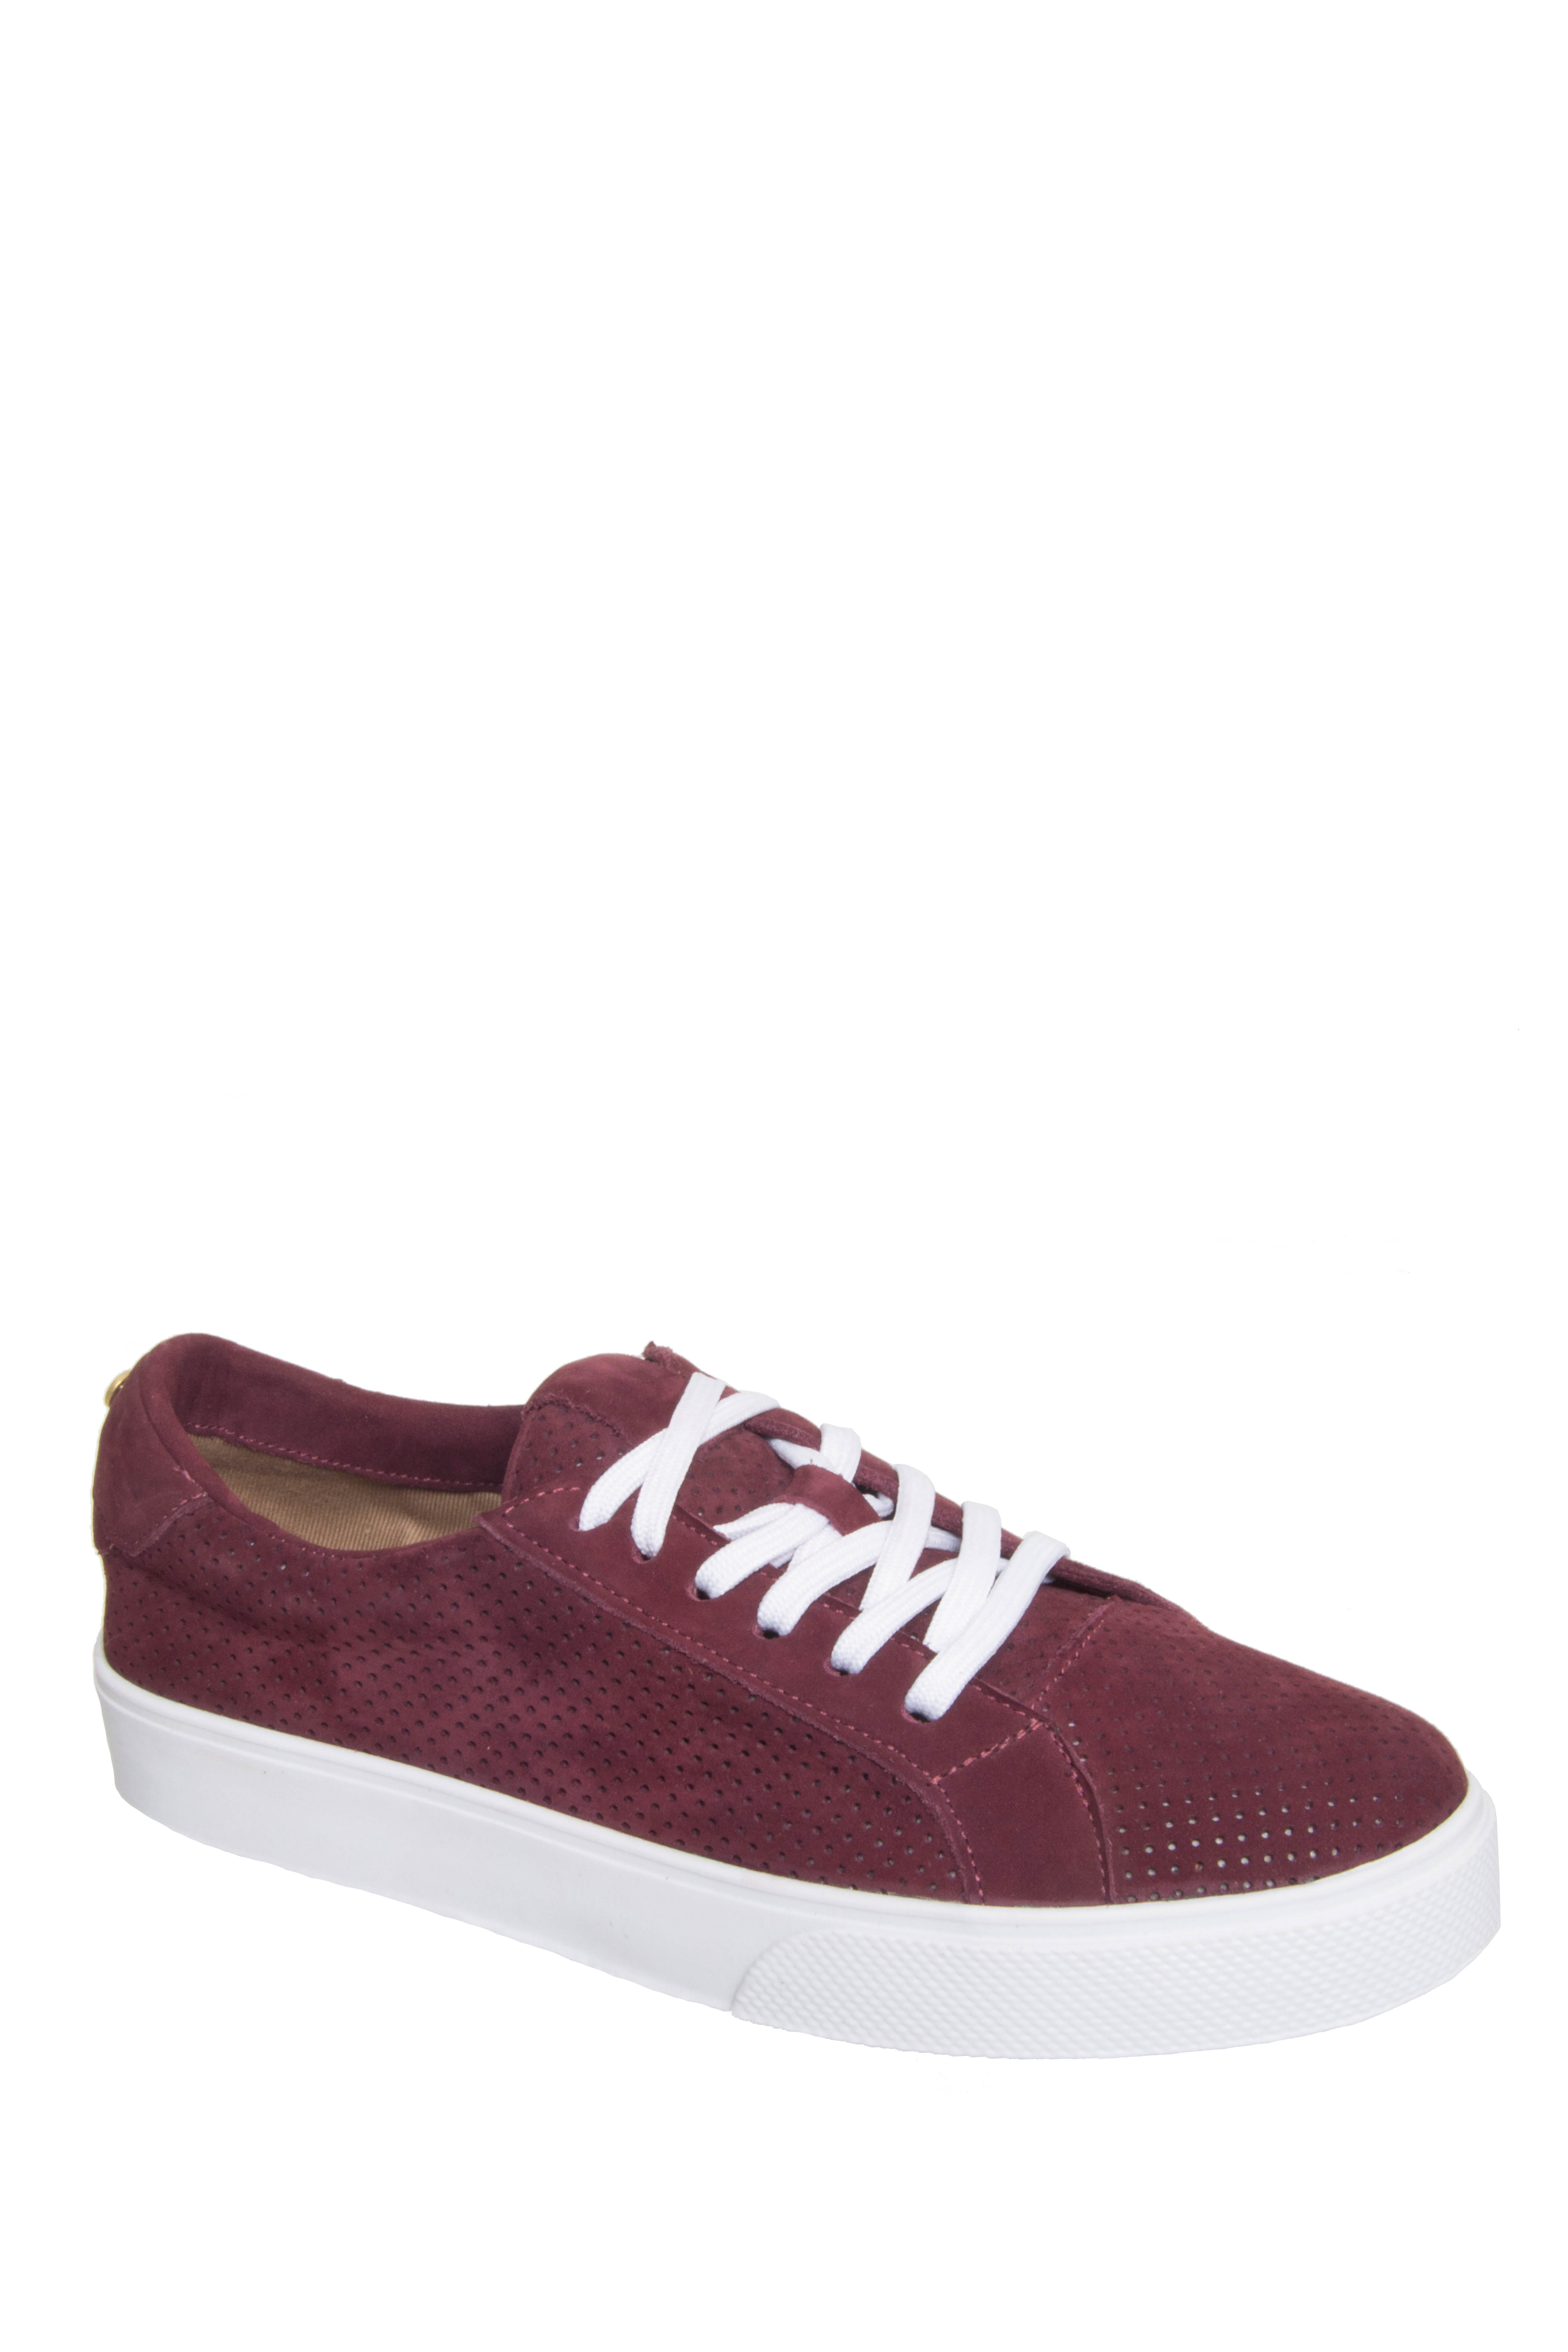 Kaanas Yuma Lace-Up Sneakers - Wine